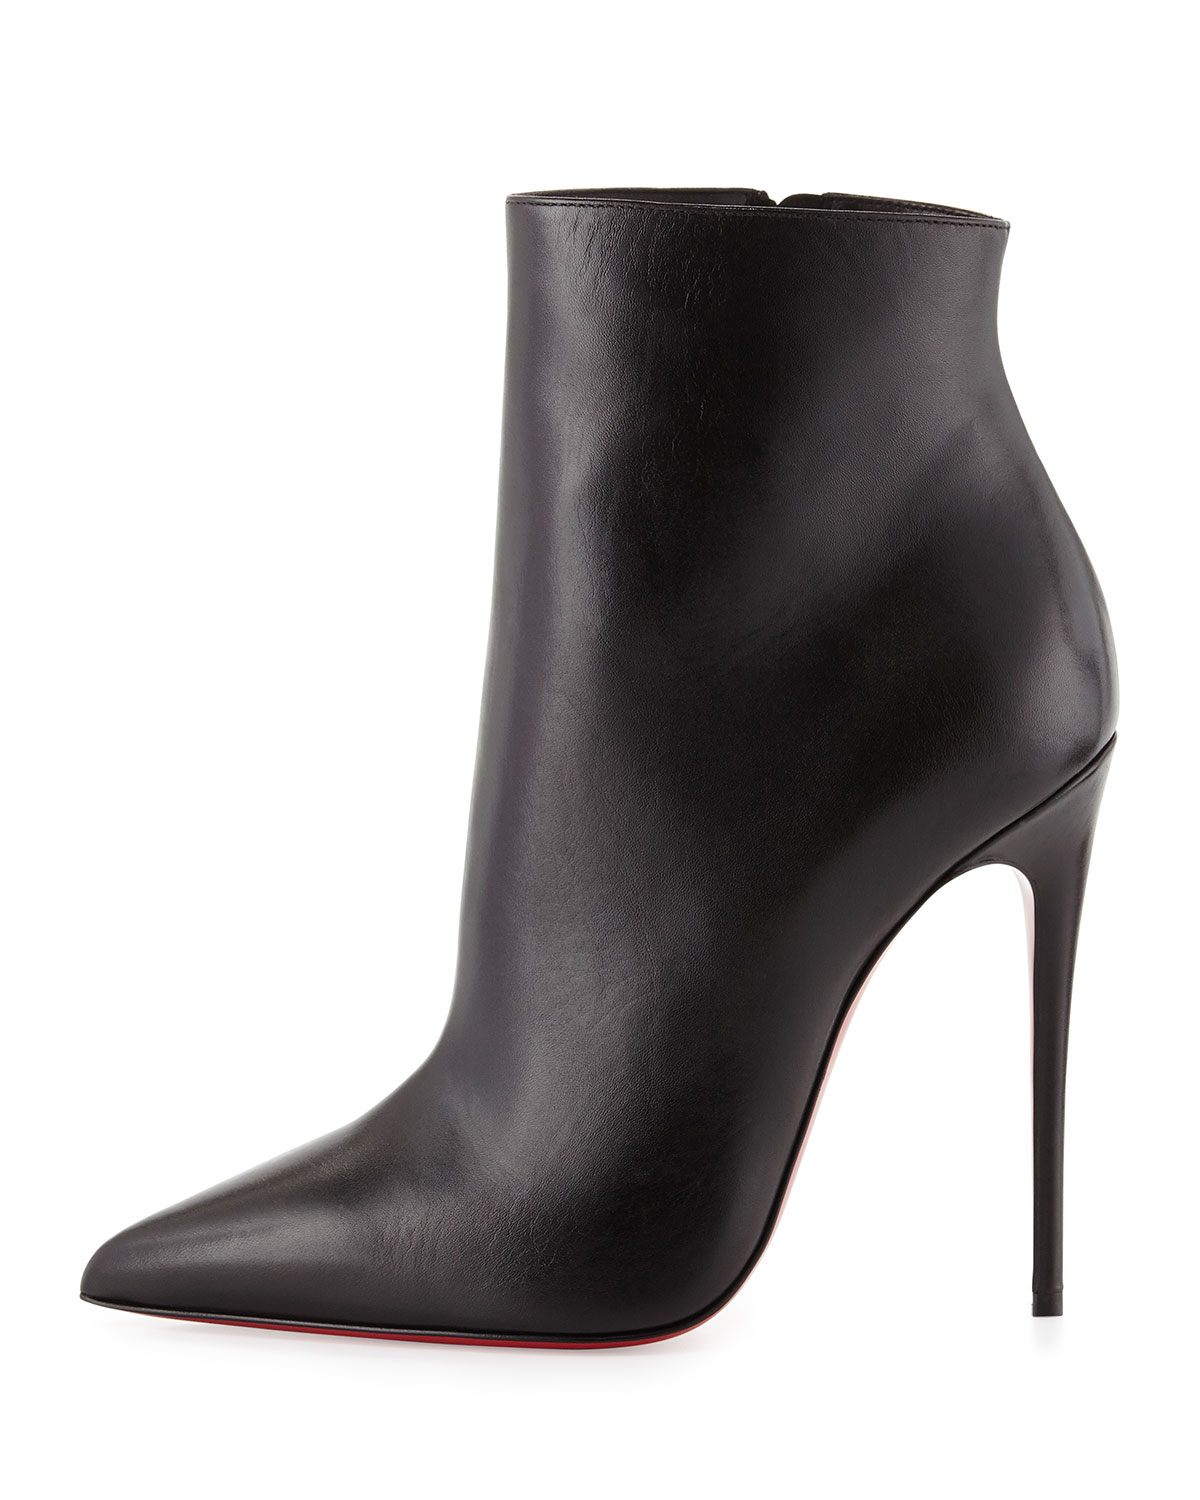 Christian Louboutin So Kate Booty Red Sole Ankle Boot